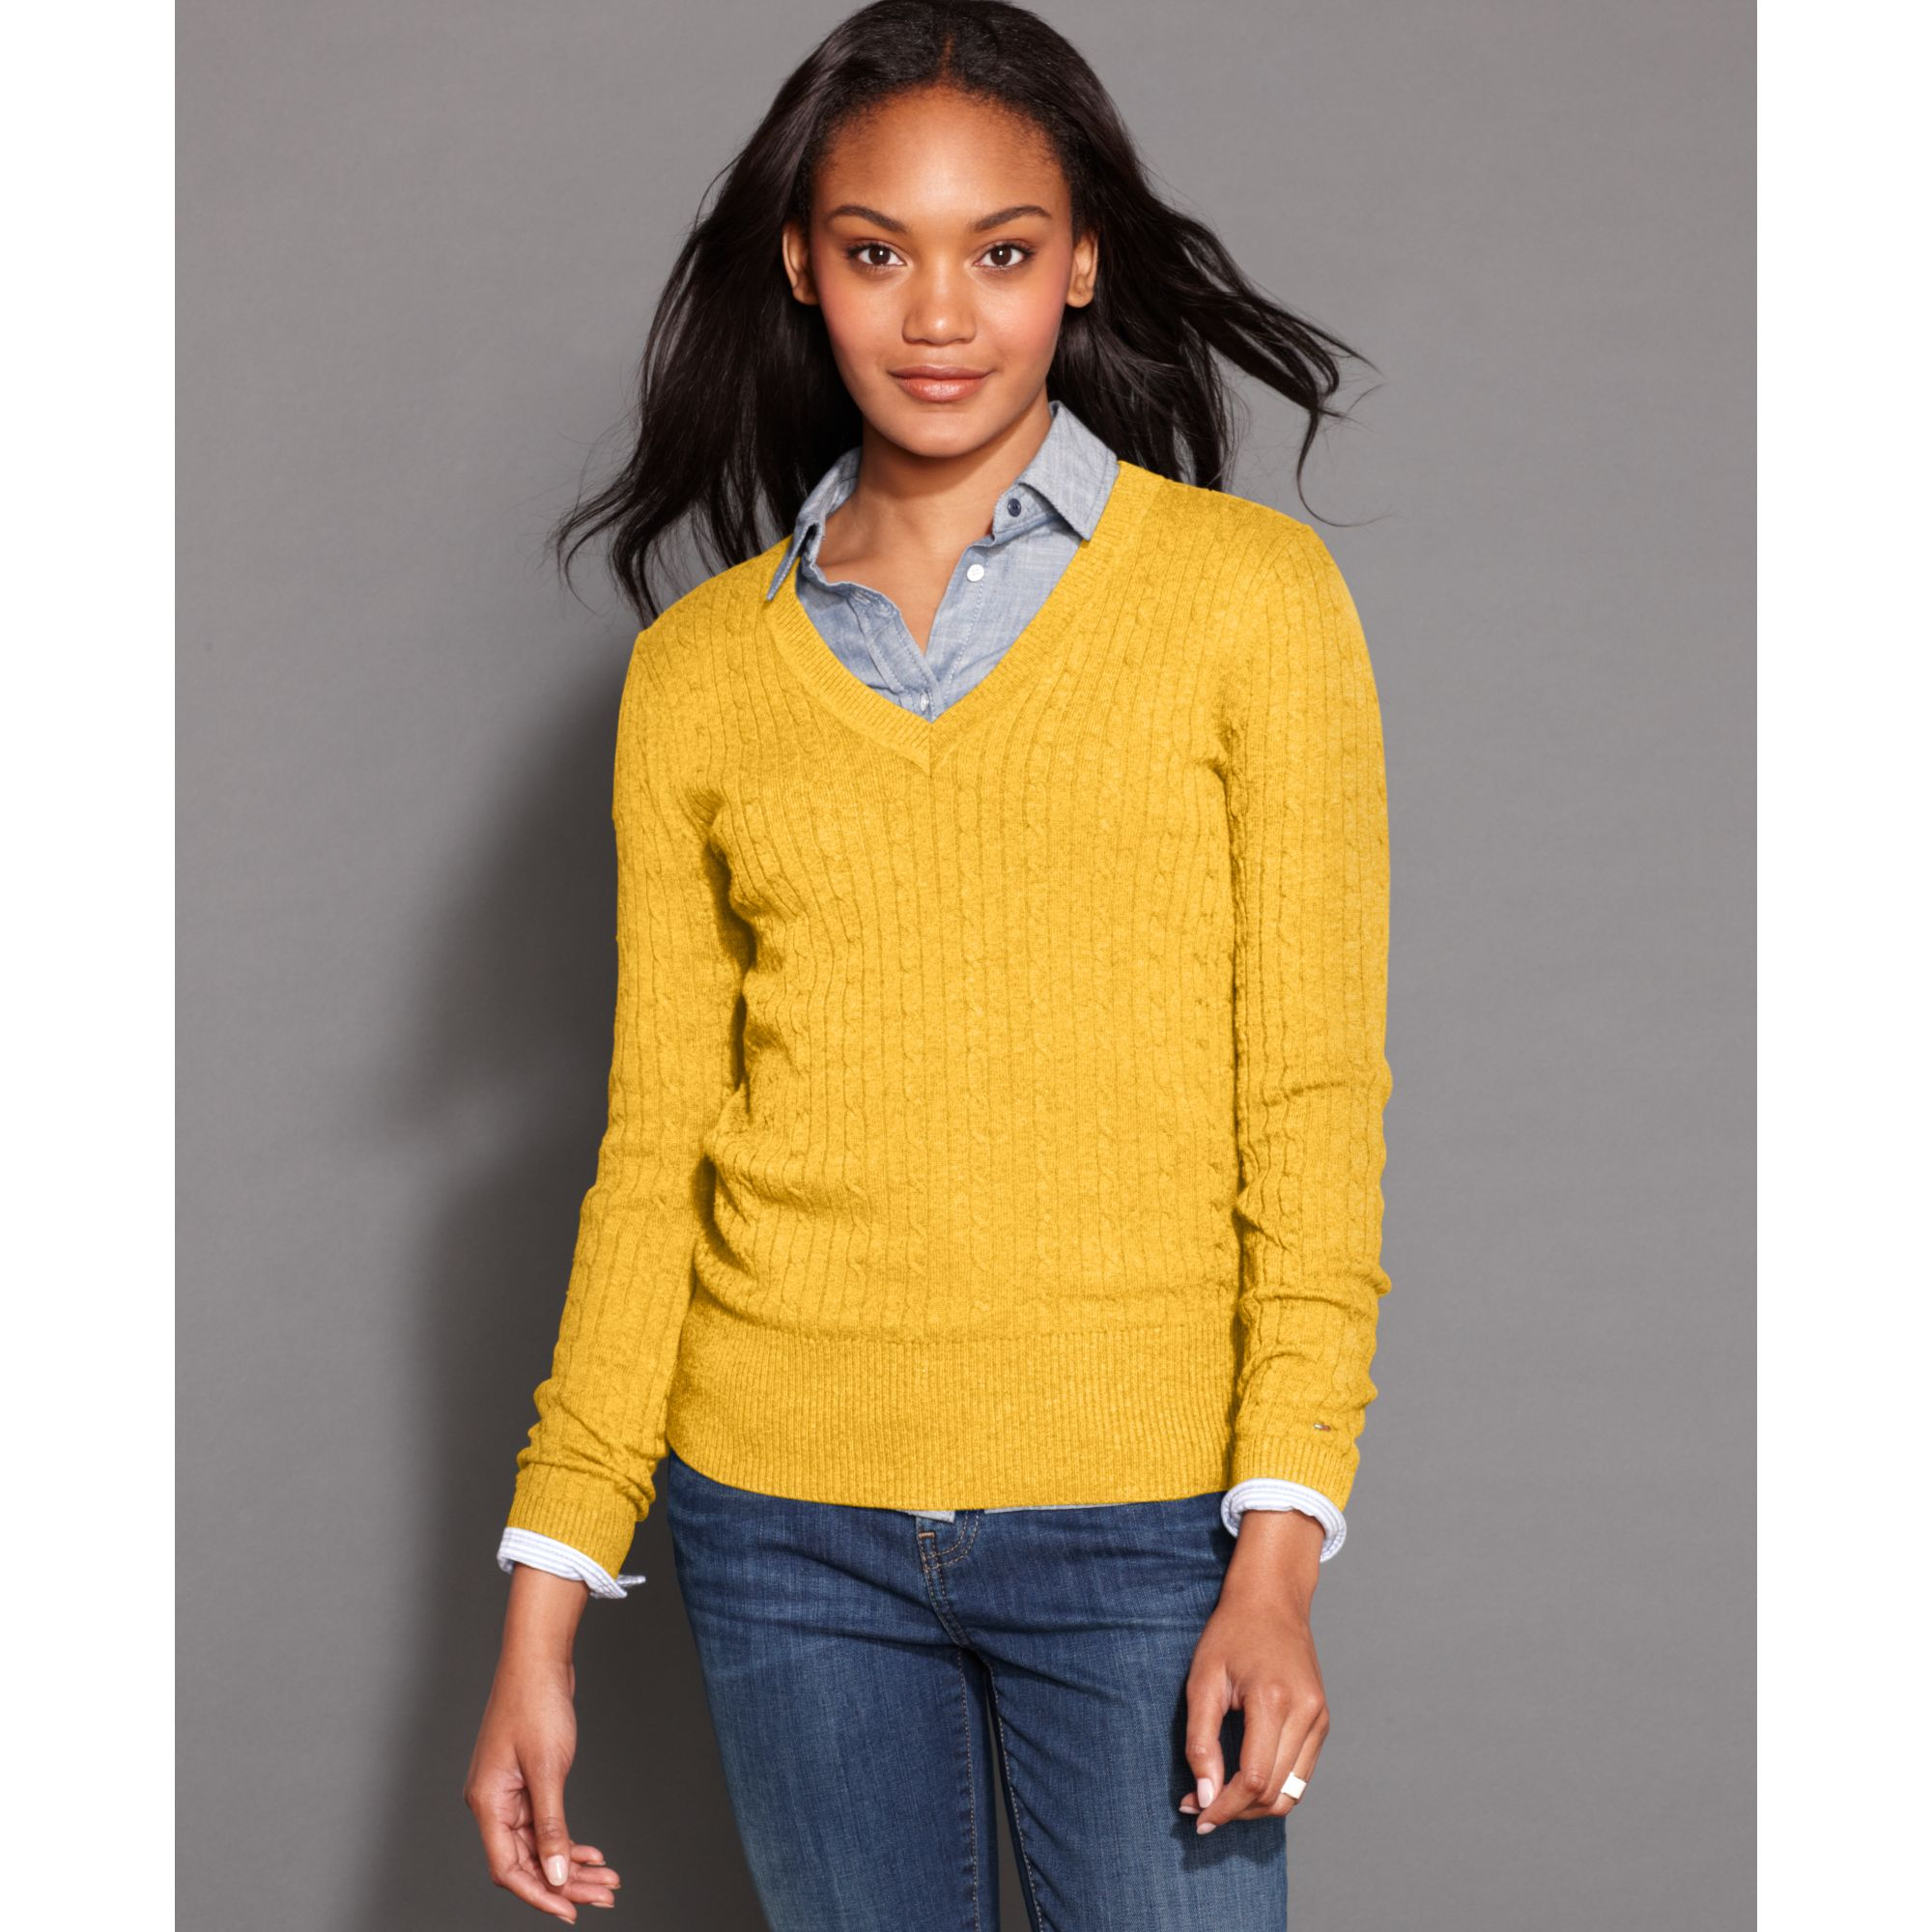 7c984129 Tommy Hilfiger Longsleeve Vneck Cableknit Sweater in Yellow - Lyst